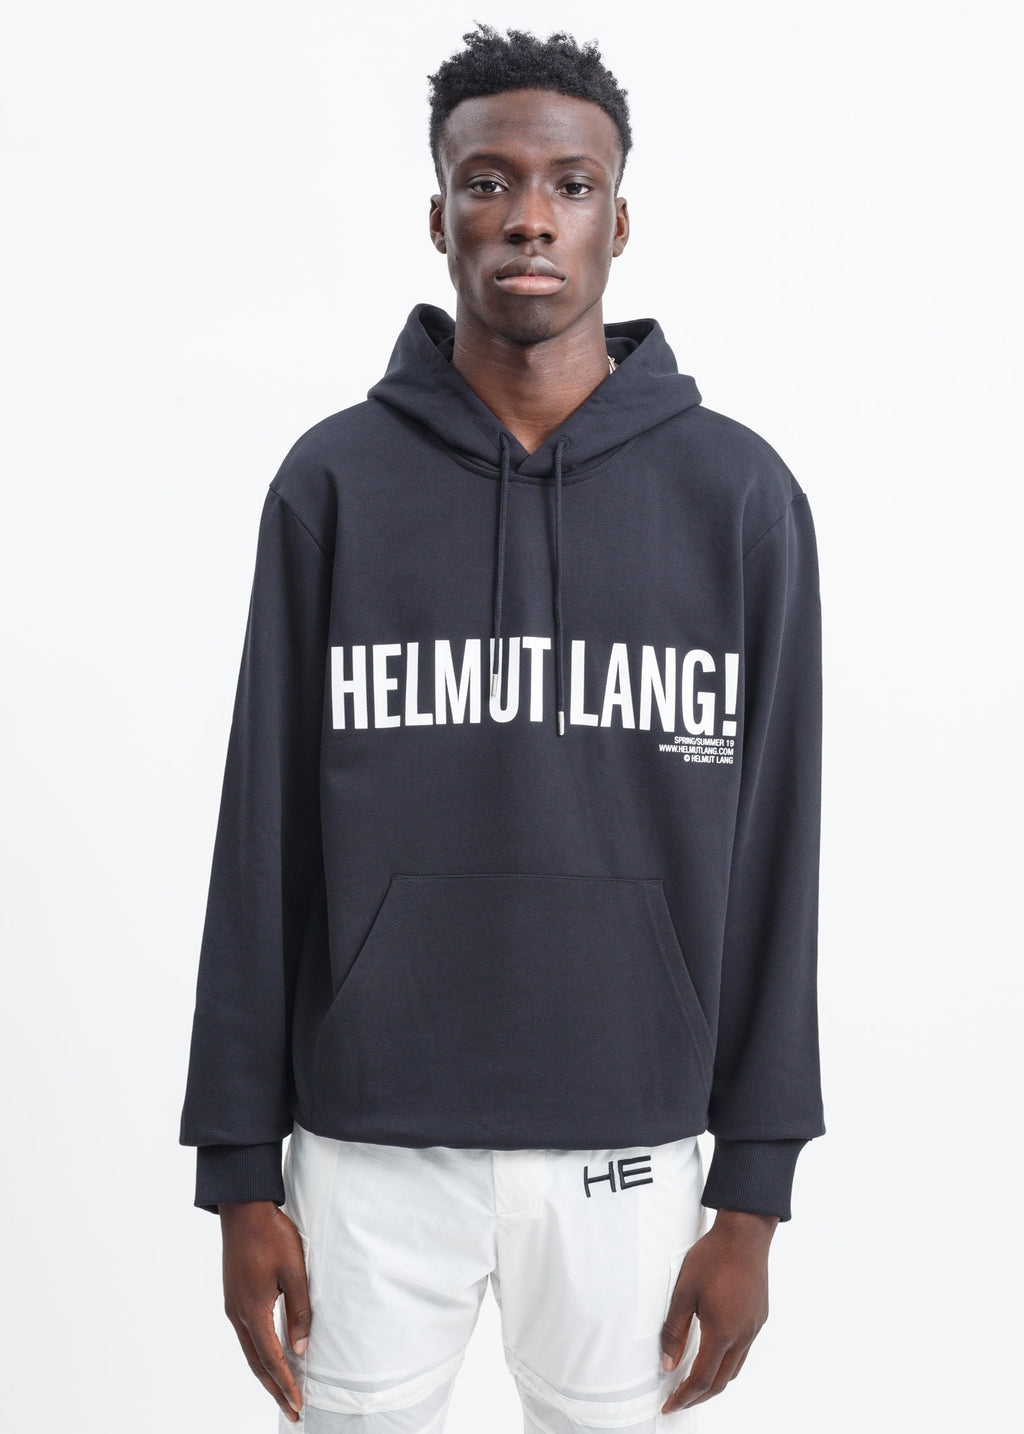 Helmut Lang, Black Exclamation Hoodie, 017 Shop